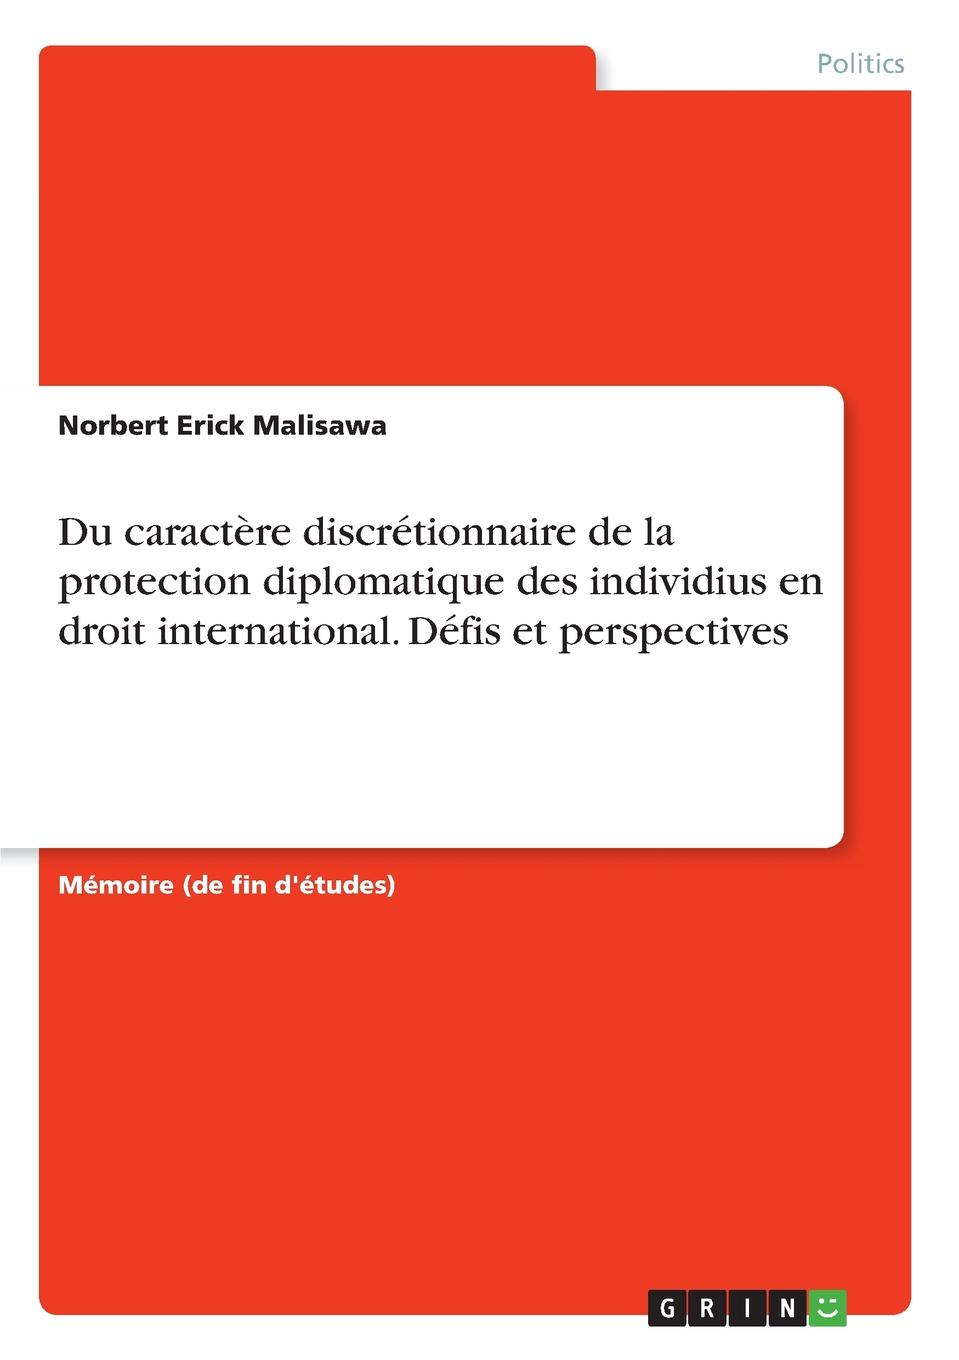 Norbert Erick Malisawa Du caractere discretionnaire de la protection diplomatique des individius en droit international. Defis et perspectives jules valéry les assurances sur la vie en droit international prive